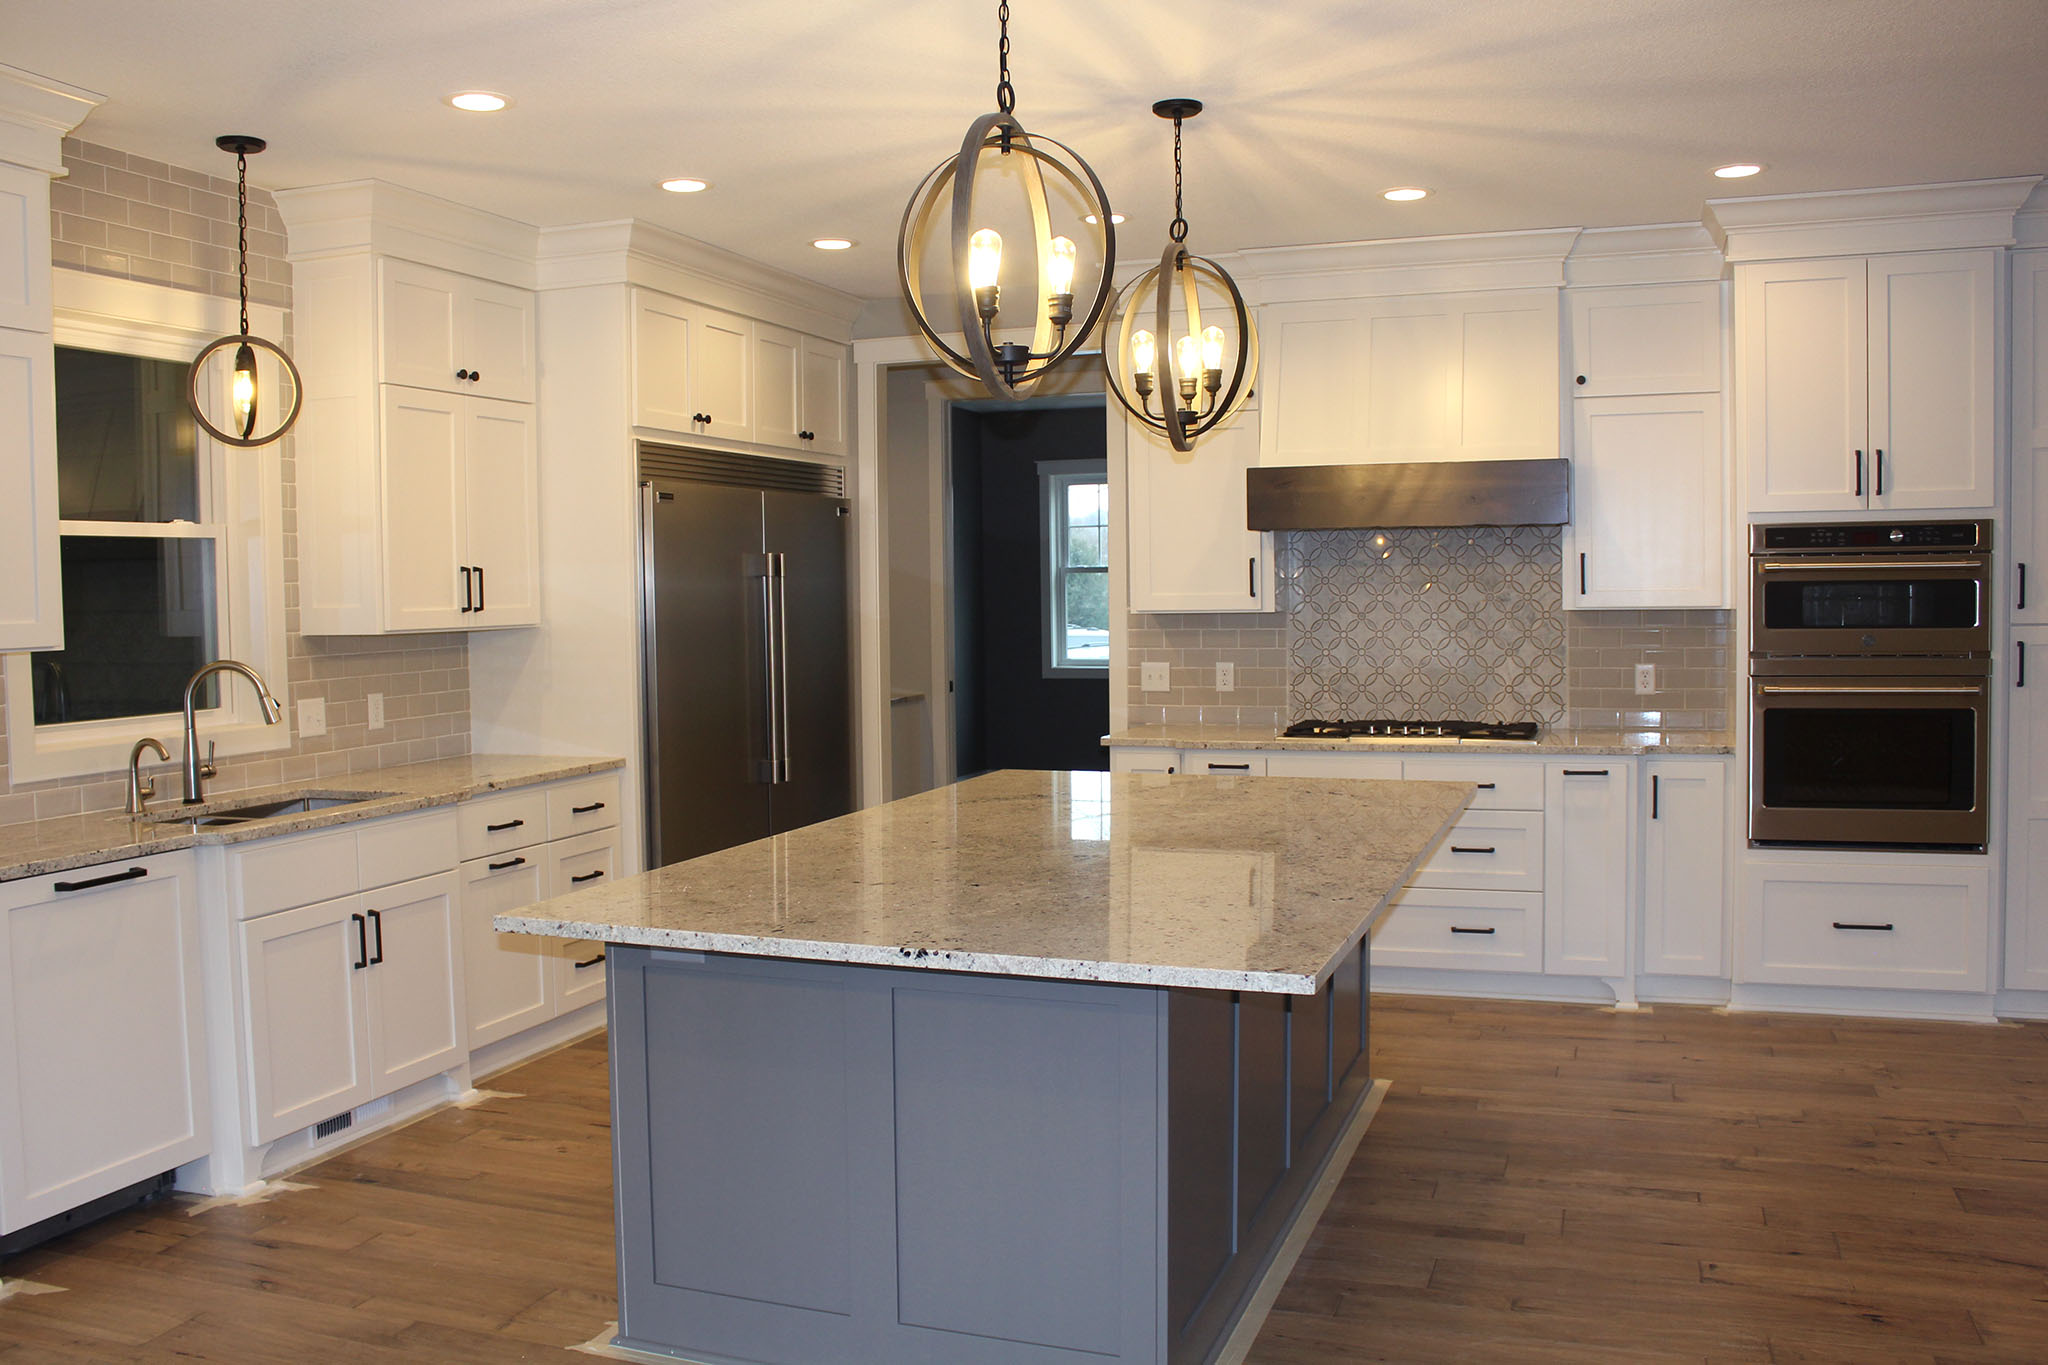 Spacious kitchen with floor to ceiling custom cabinets, granite countertops and ceramic tile backsplash